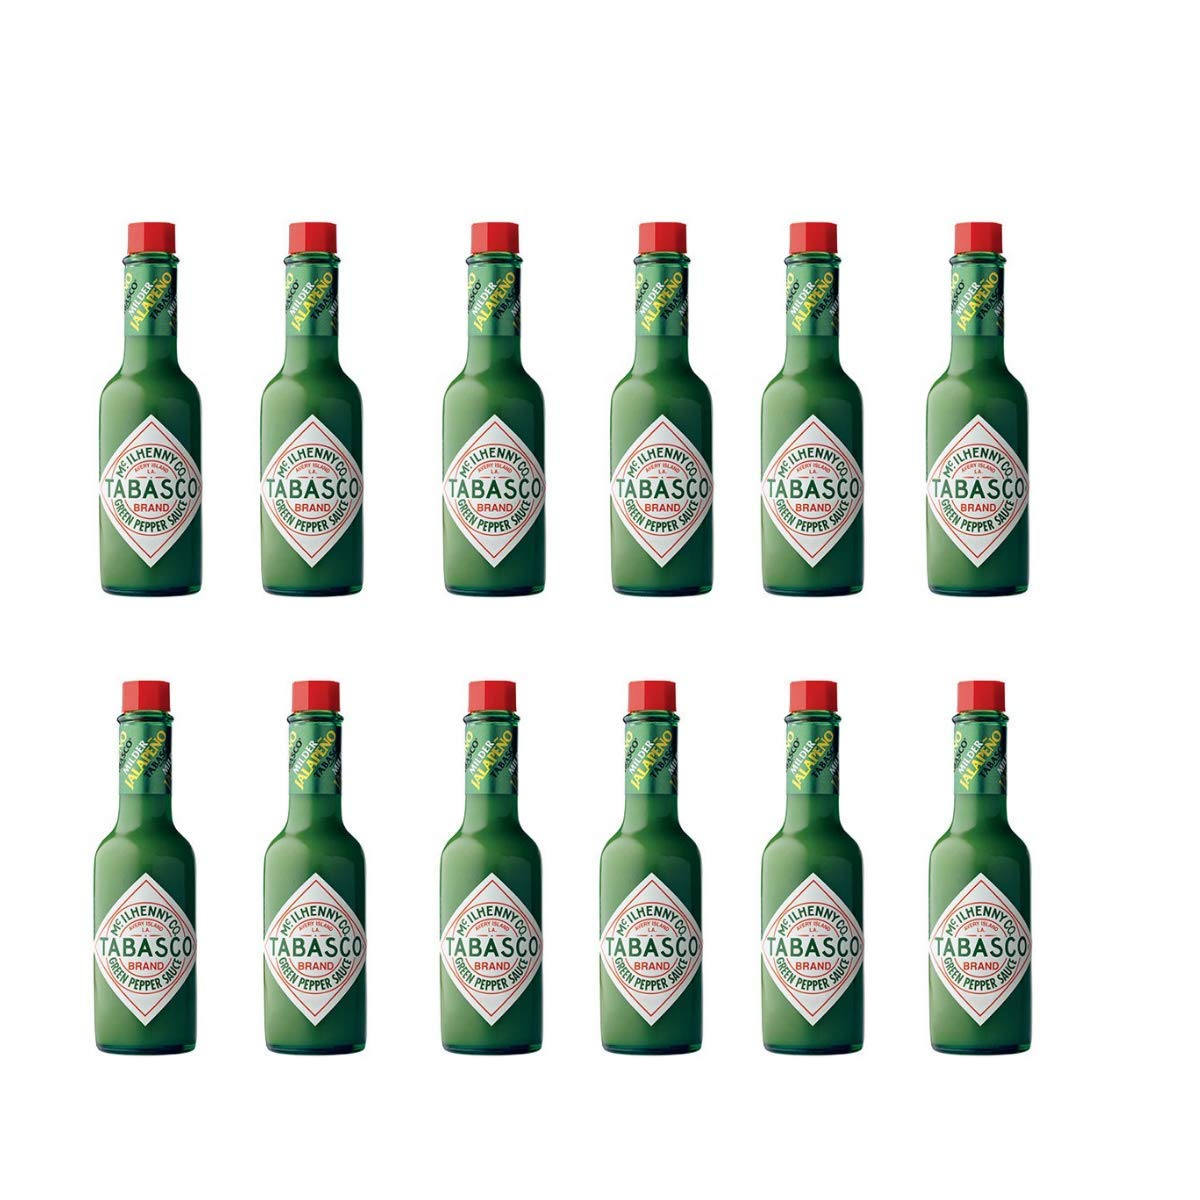 Tabasco Green Pepper Sauce, 5-ounce Bottle (Pack of 12)